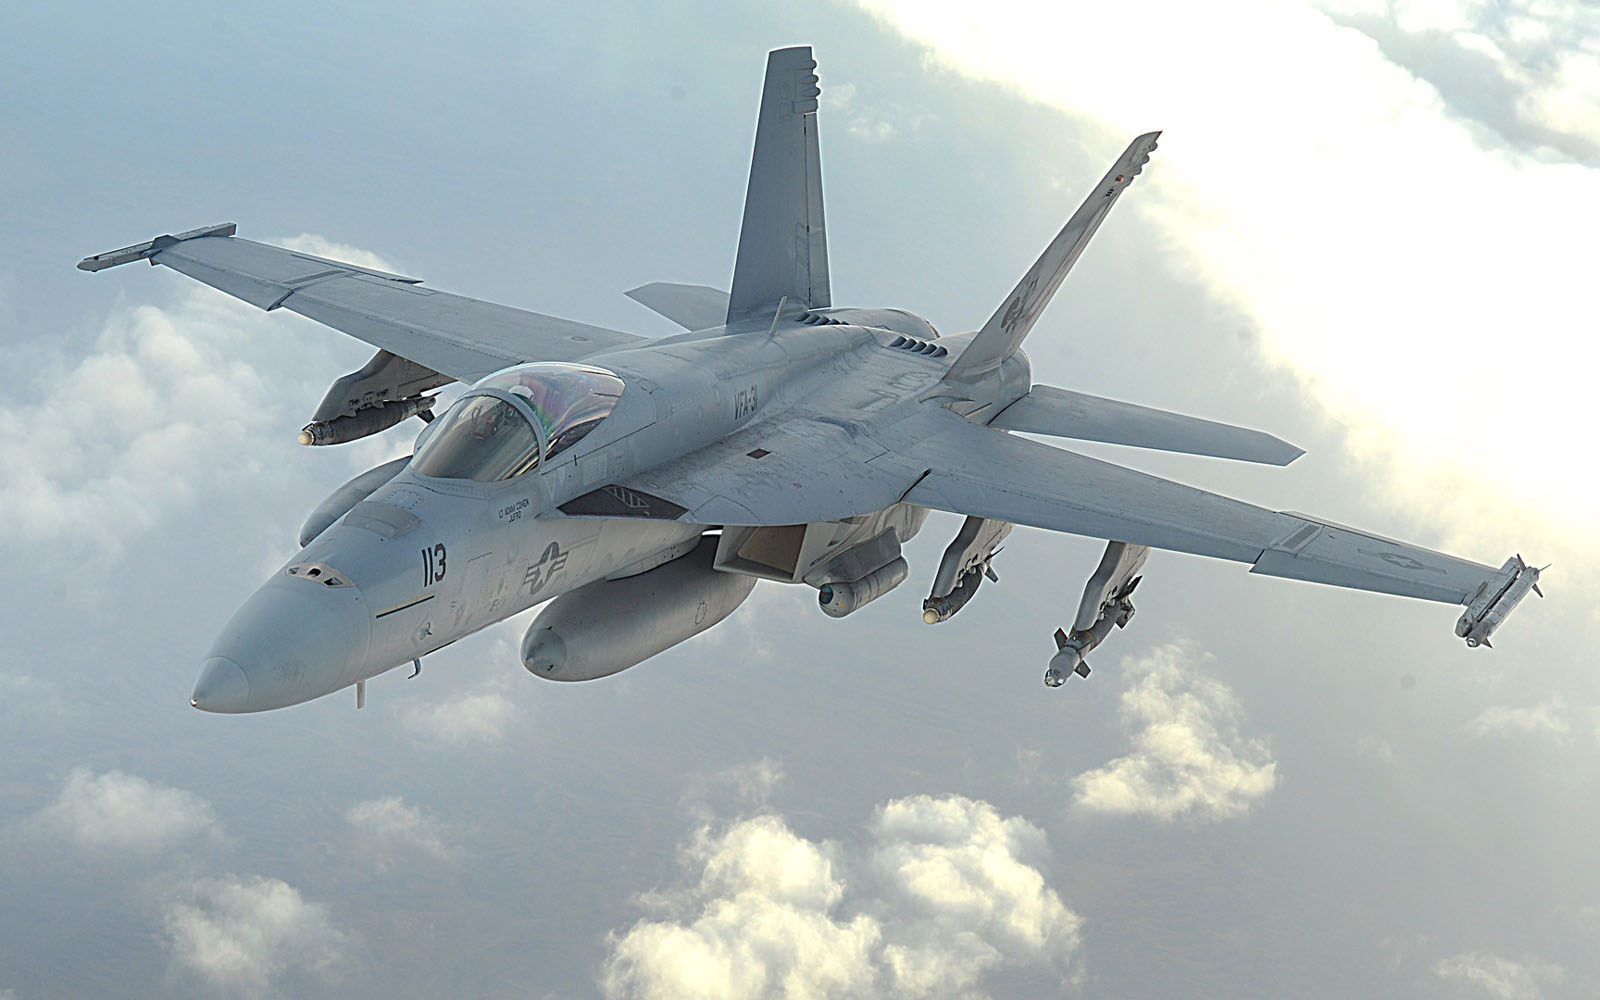 wallpapers mcdonnell douglas fa 18 hornet aircraft wallpapers. Black Bedroom Furniture Sets. Home Design Ideas